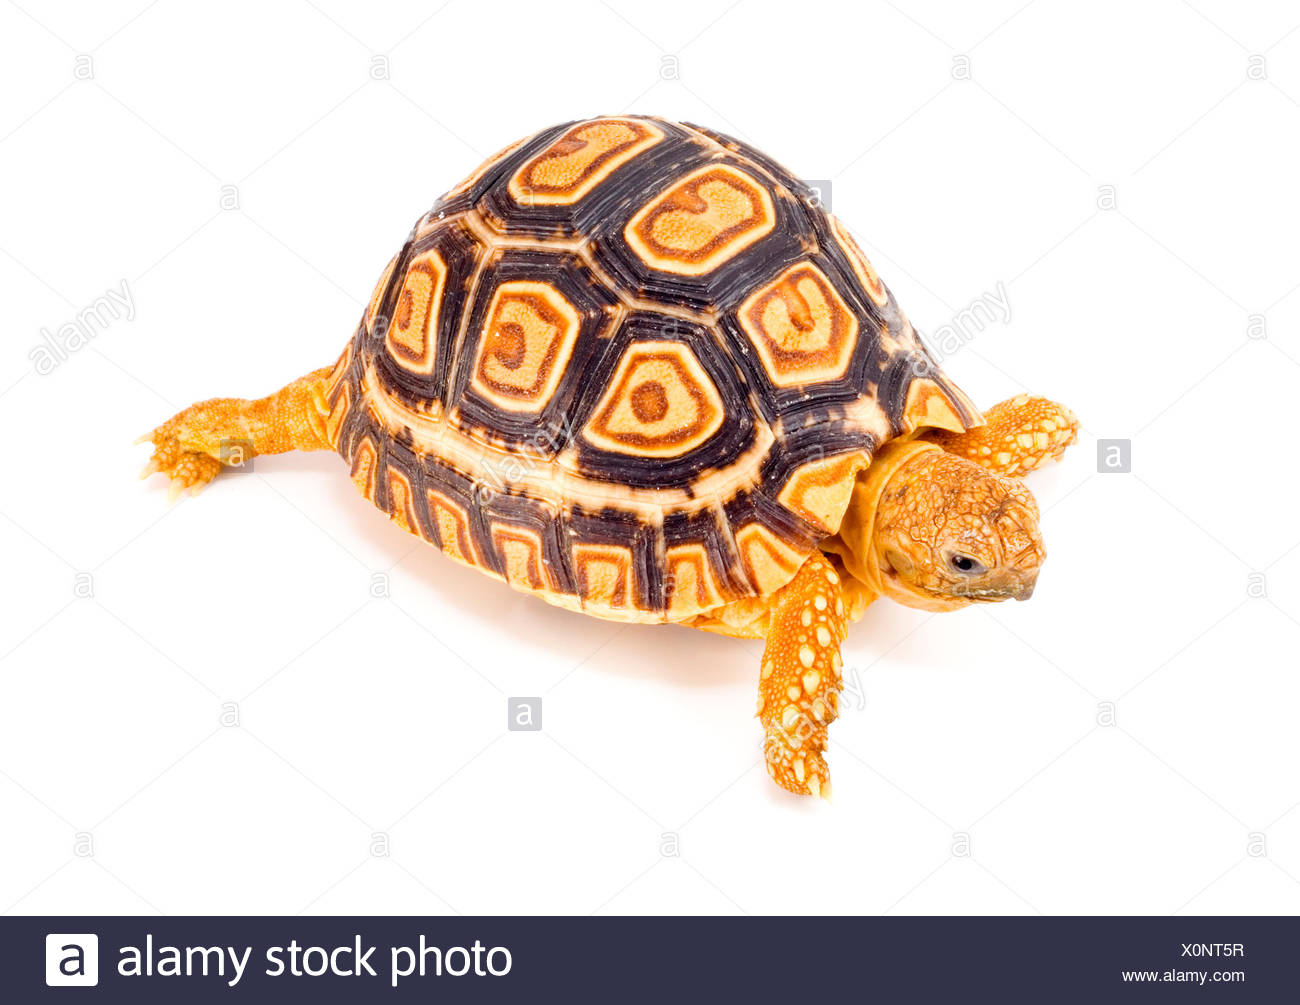 tortoise turtle macro close-up macro admission close up view protected - Stock Image